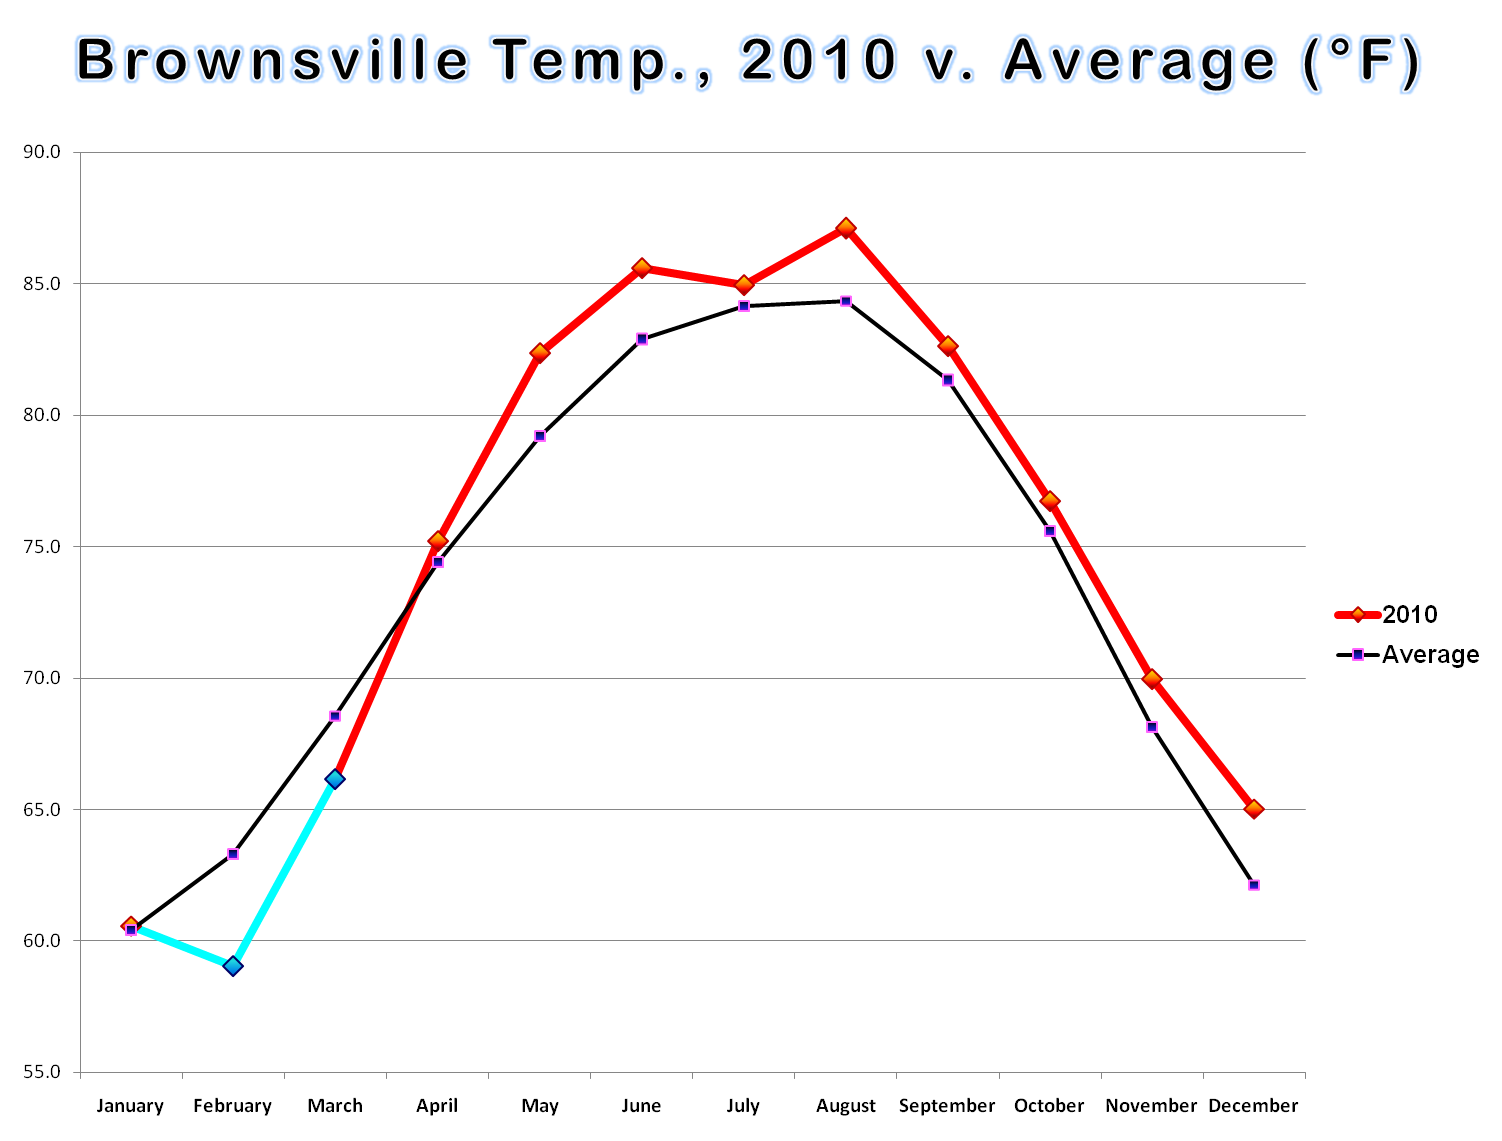 Temperature Bar And Line Graphs For Brownsville Harlingen